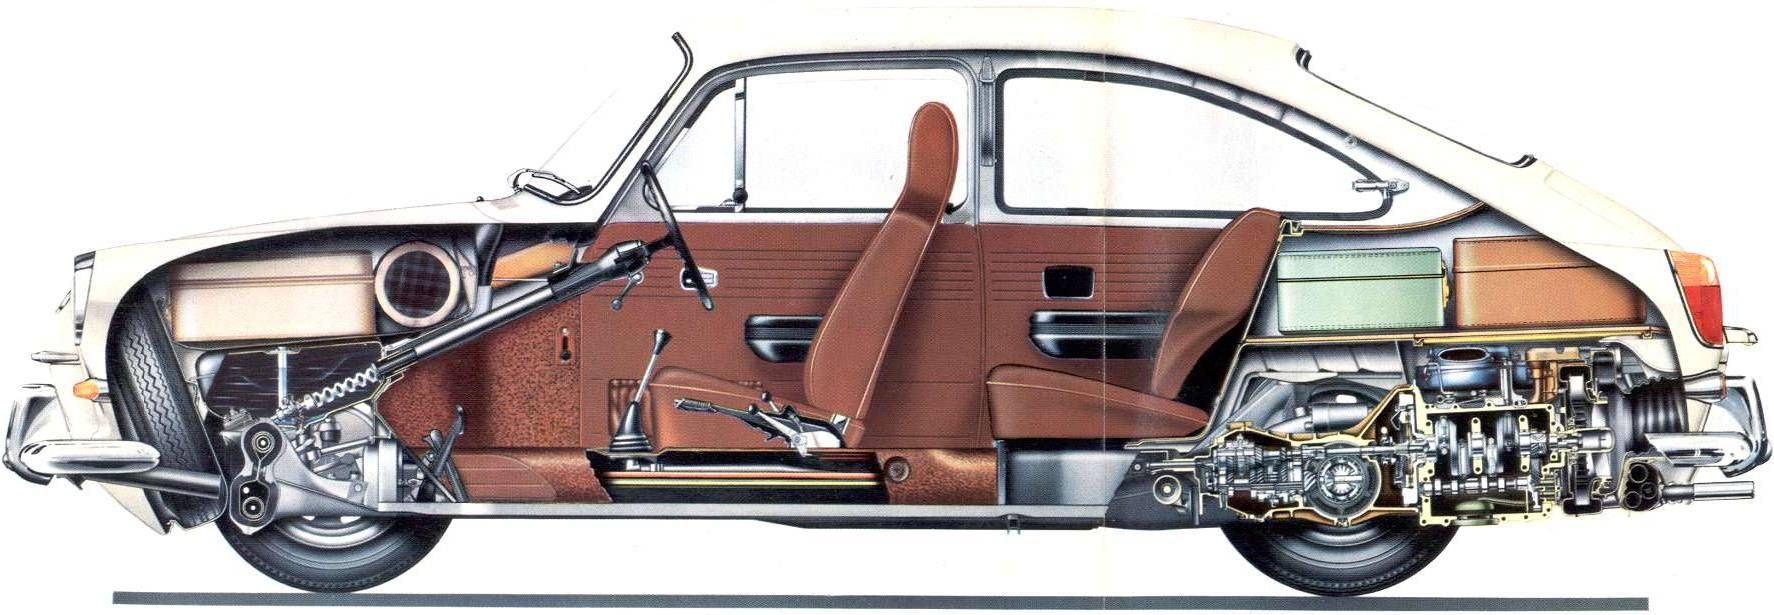 Volkswagen type 3 fastback smcars car blueprints forum vw volkswagen type 3 fastback smcars car blueprints forum publicscrutiny Image collections